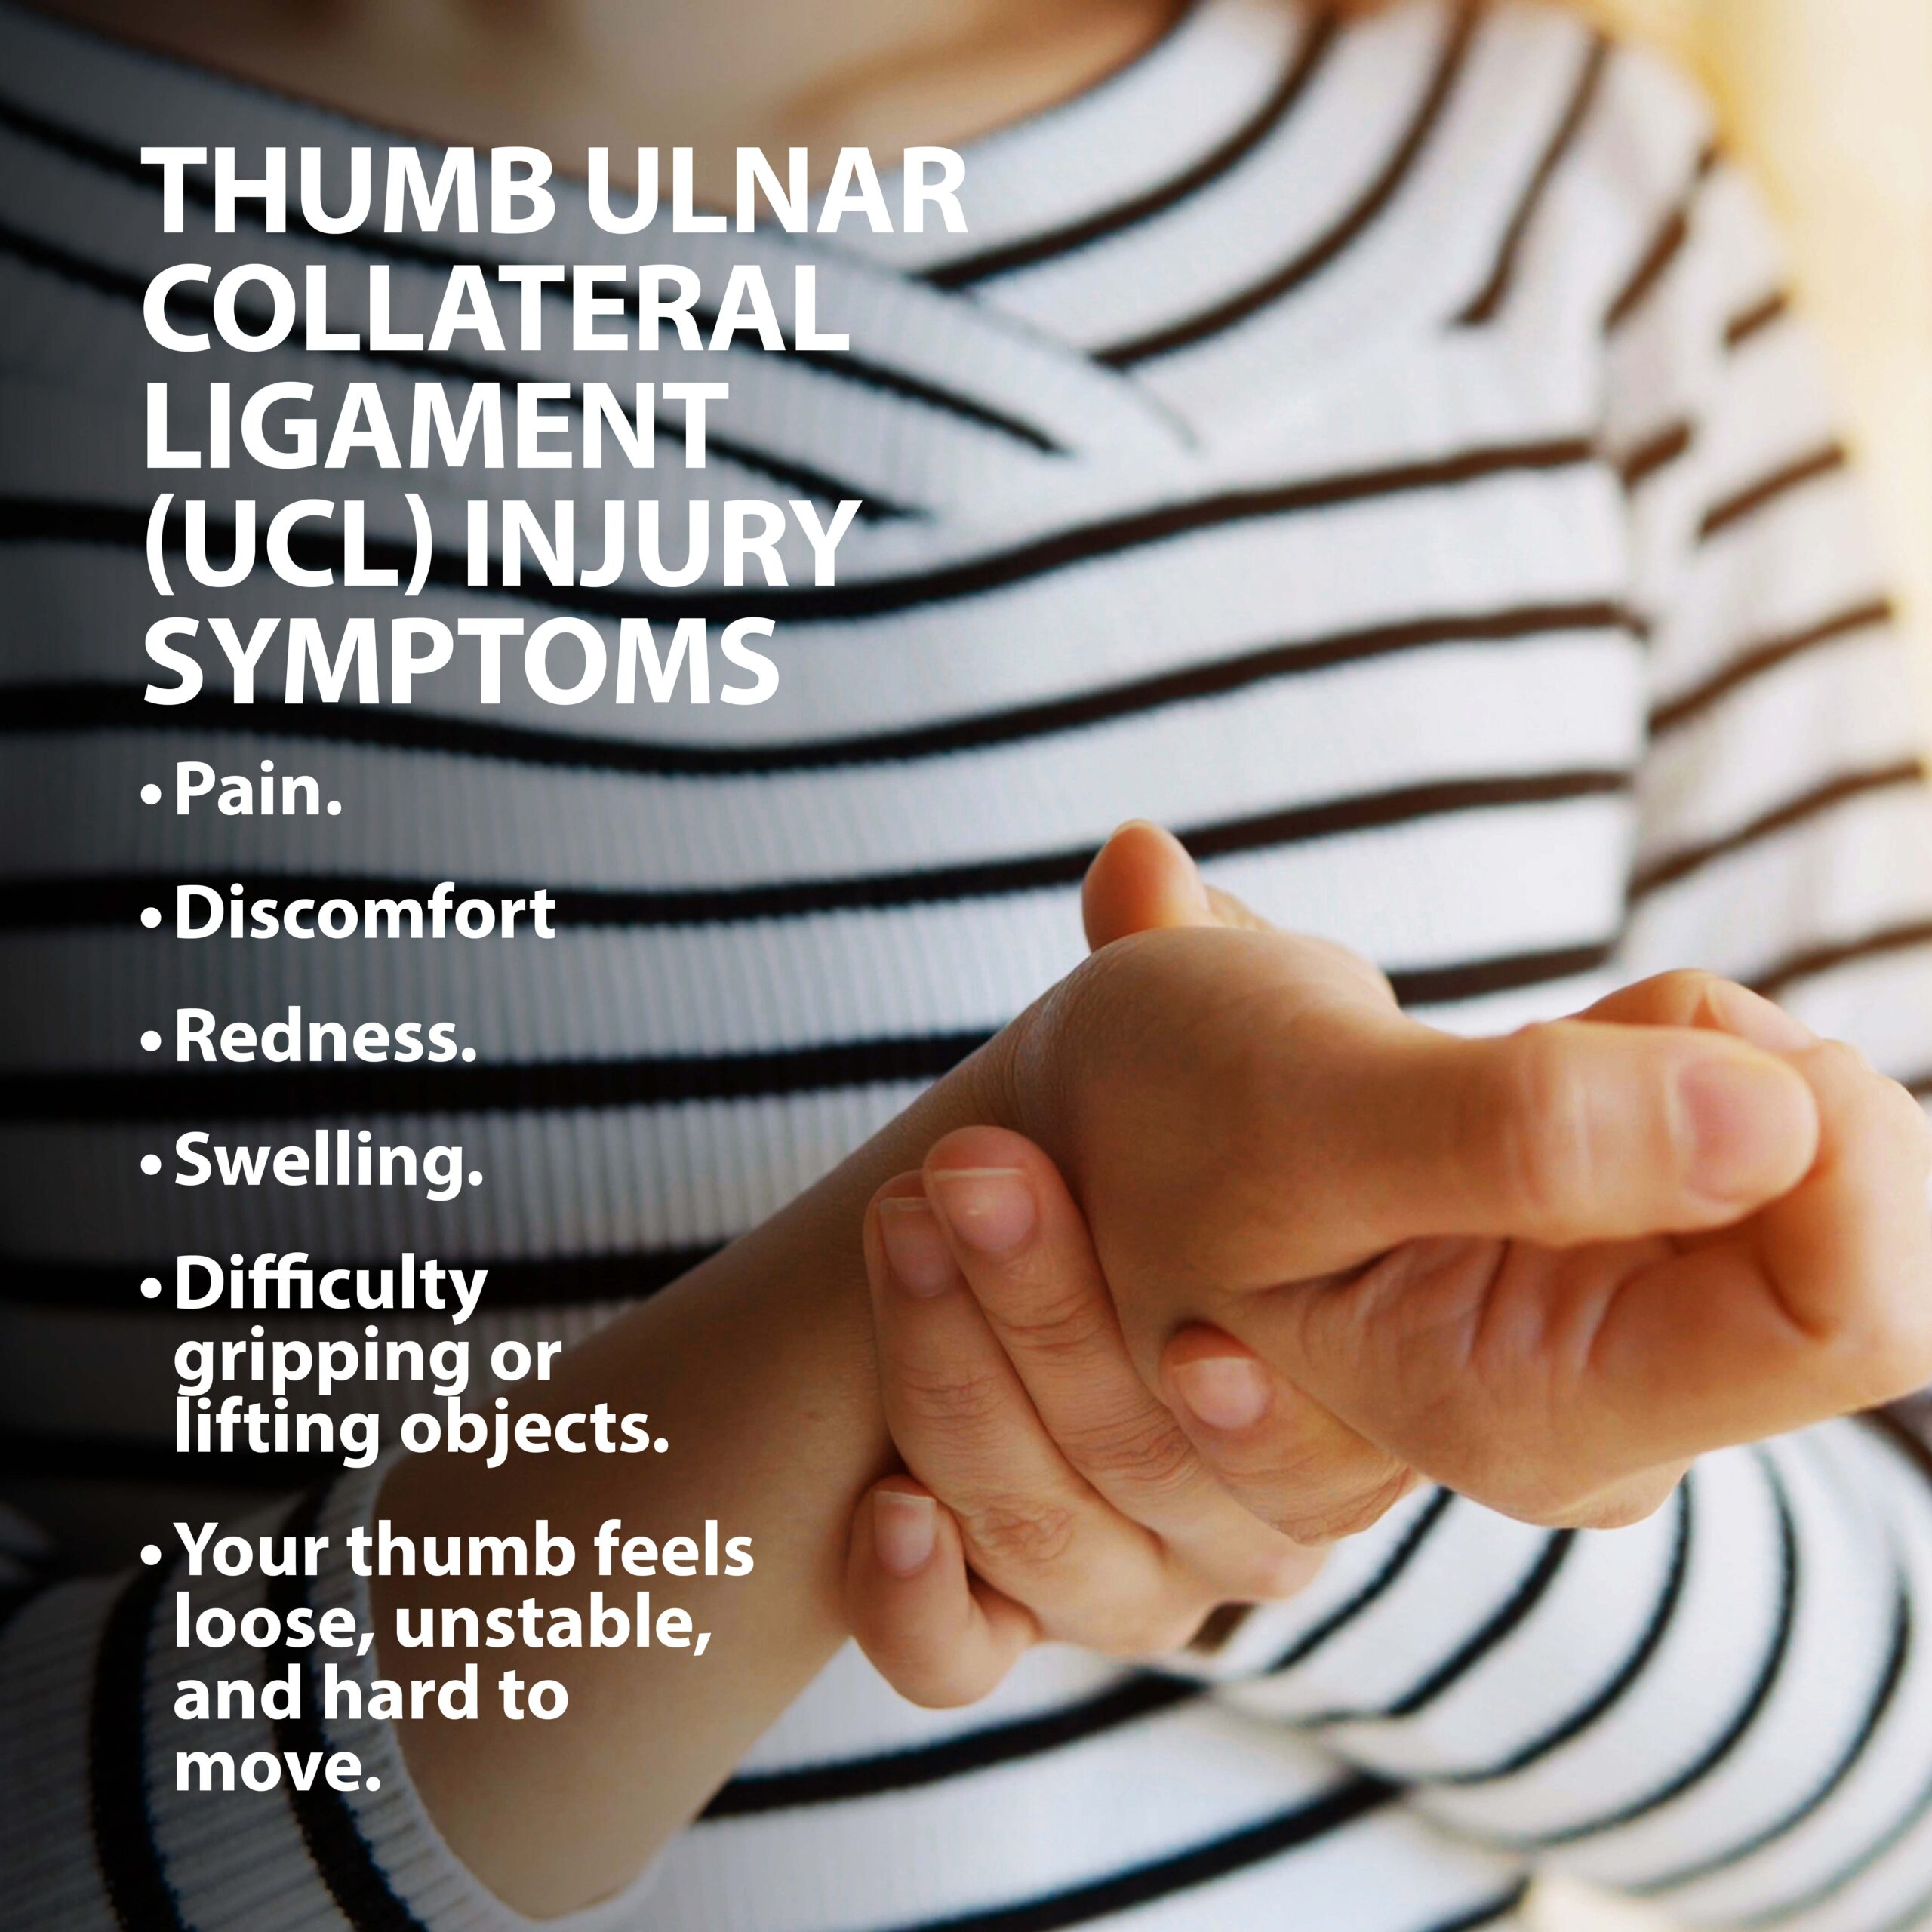 thumb ulnar collateral ligament